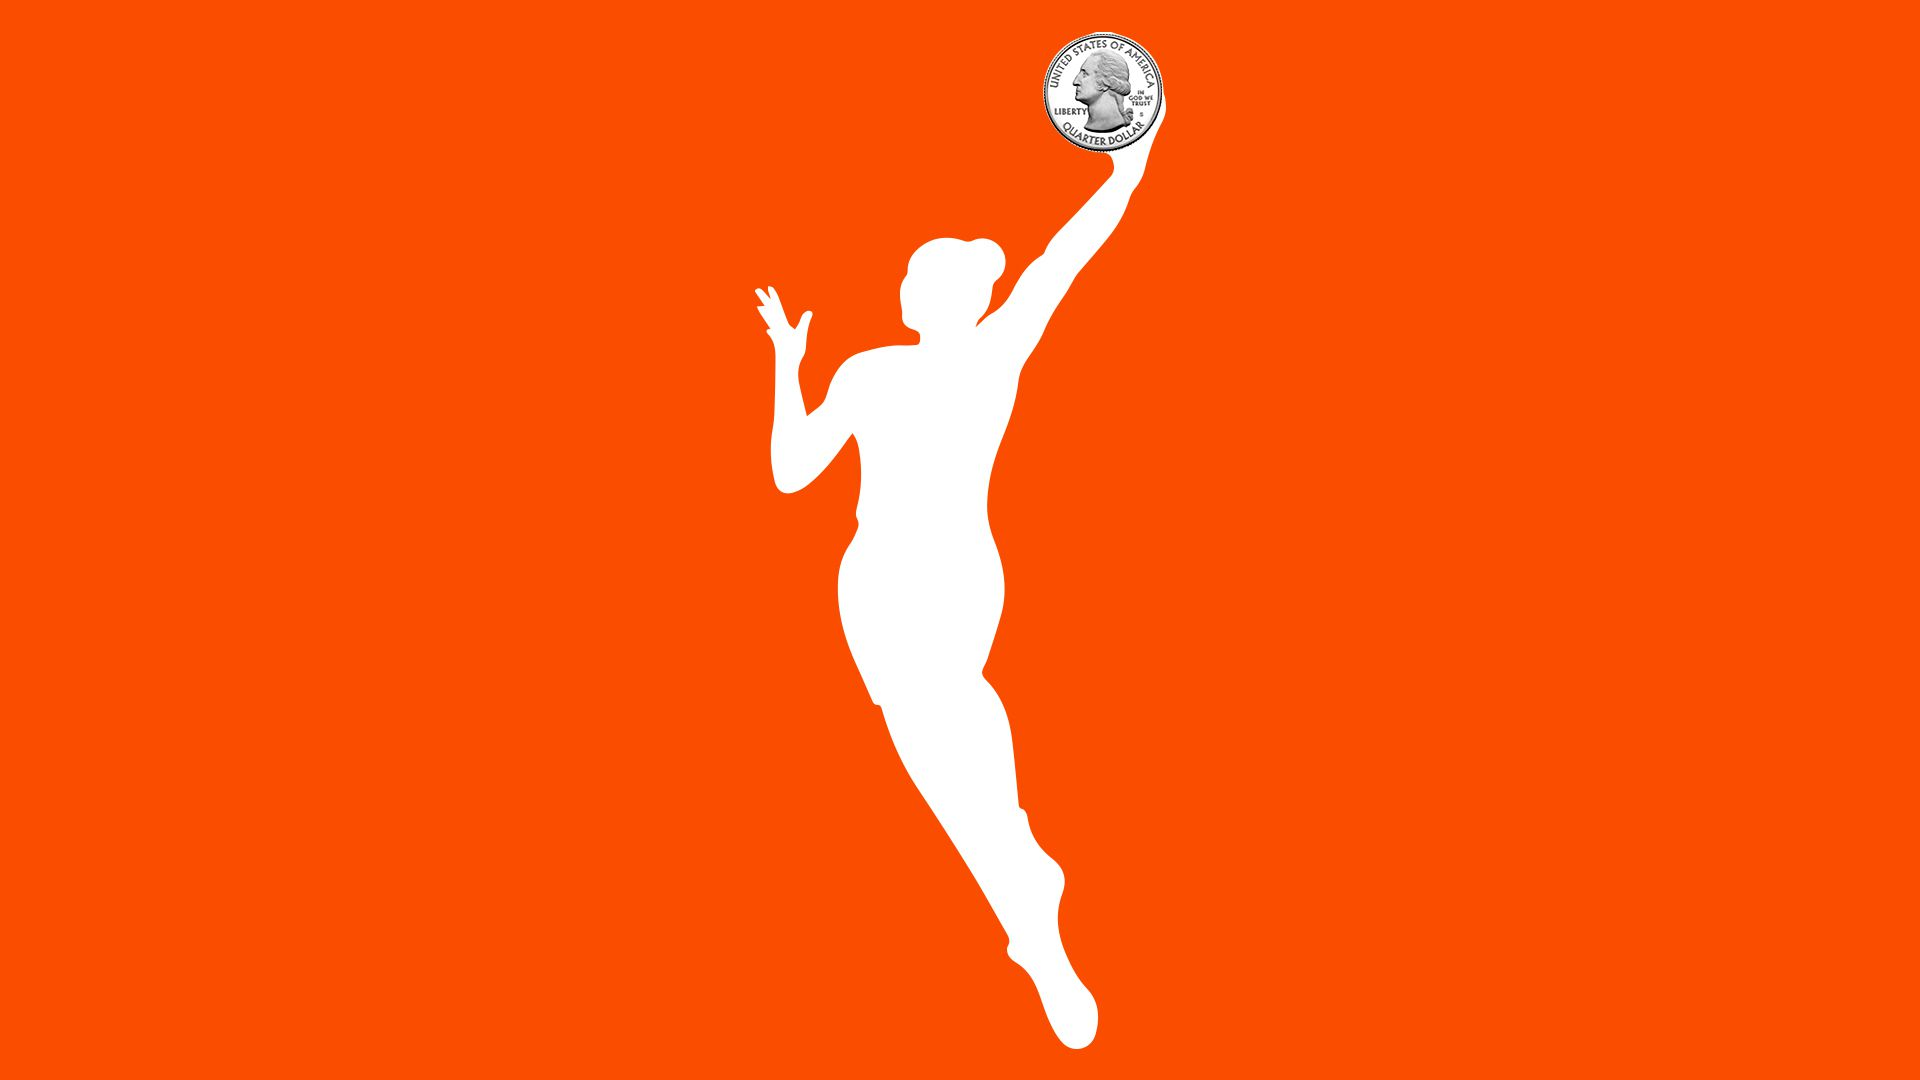 5a23b16a549 WNBA logo with ball replaced by money